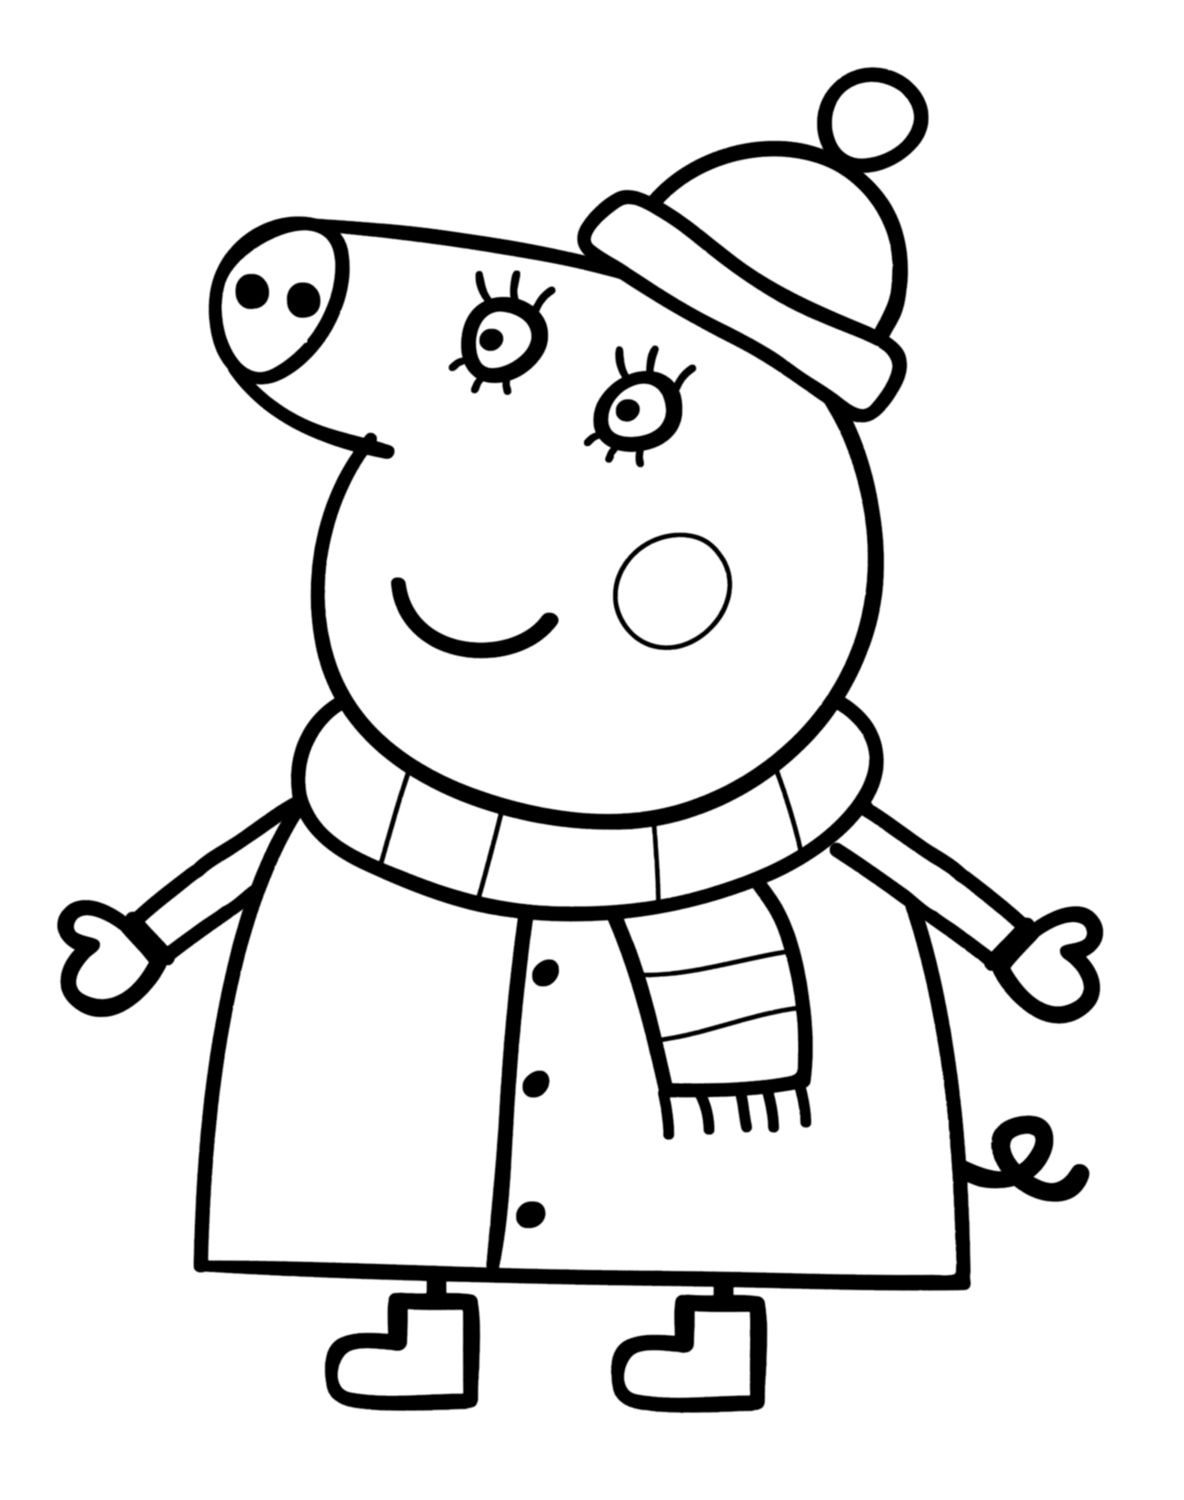 Mummy Pig In Peppa Pig Coloring Page